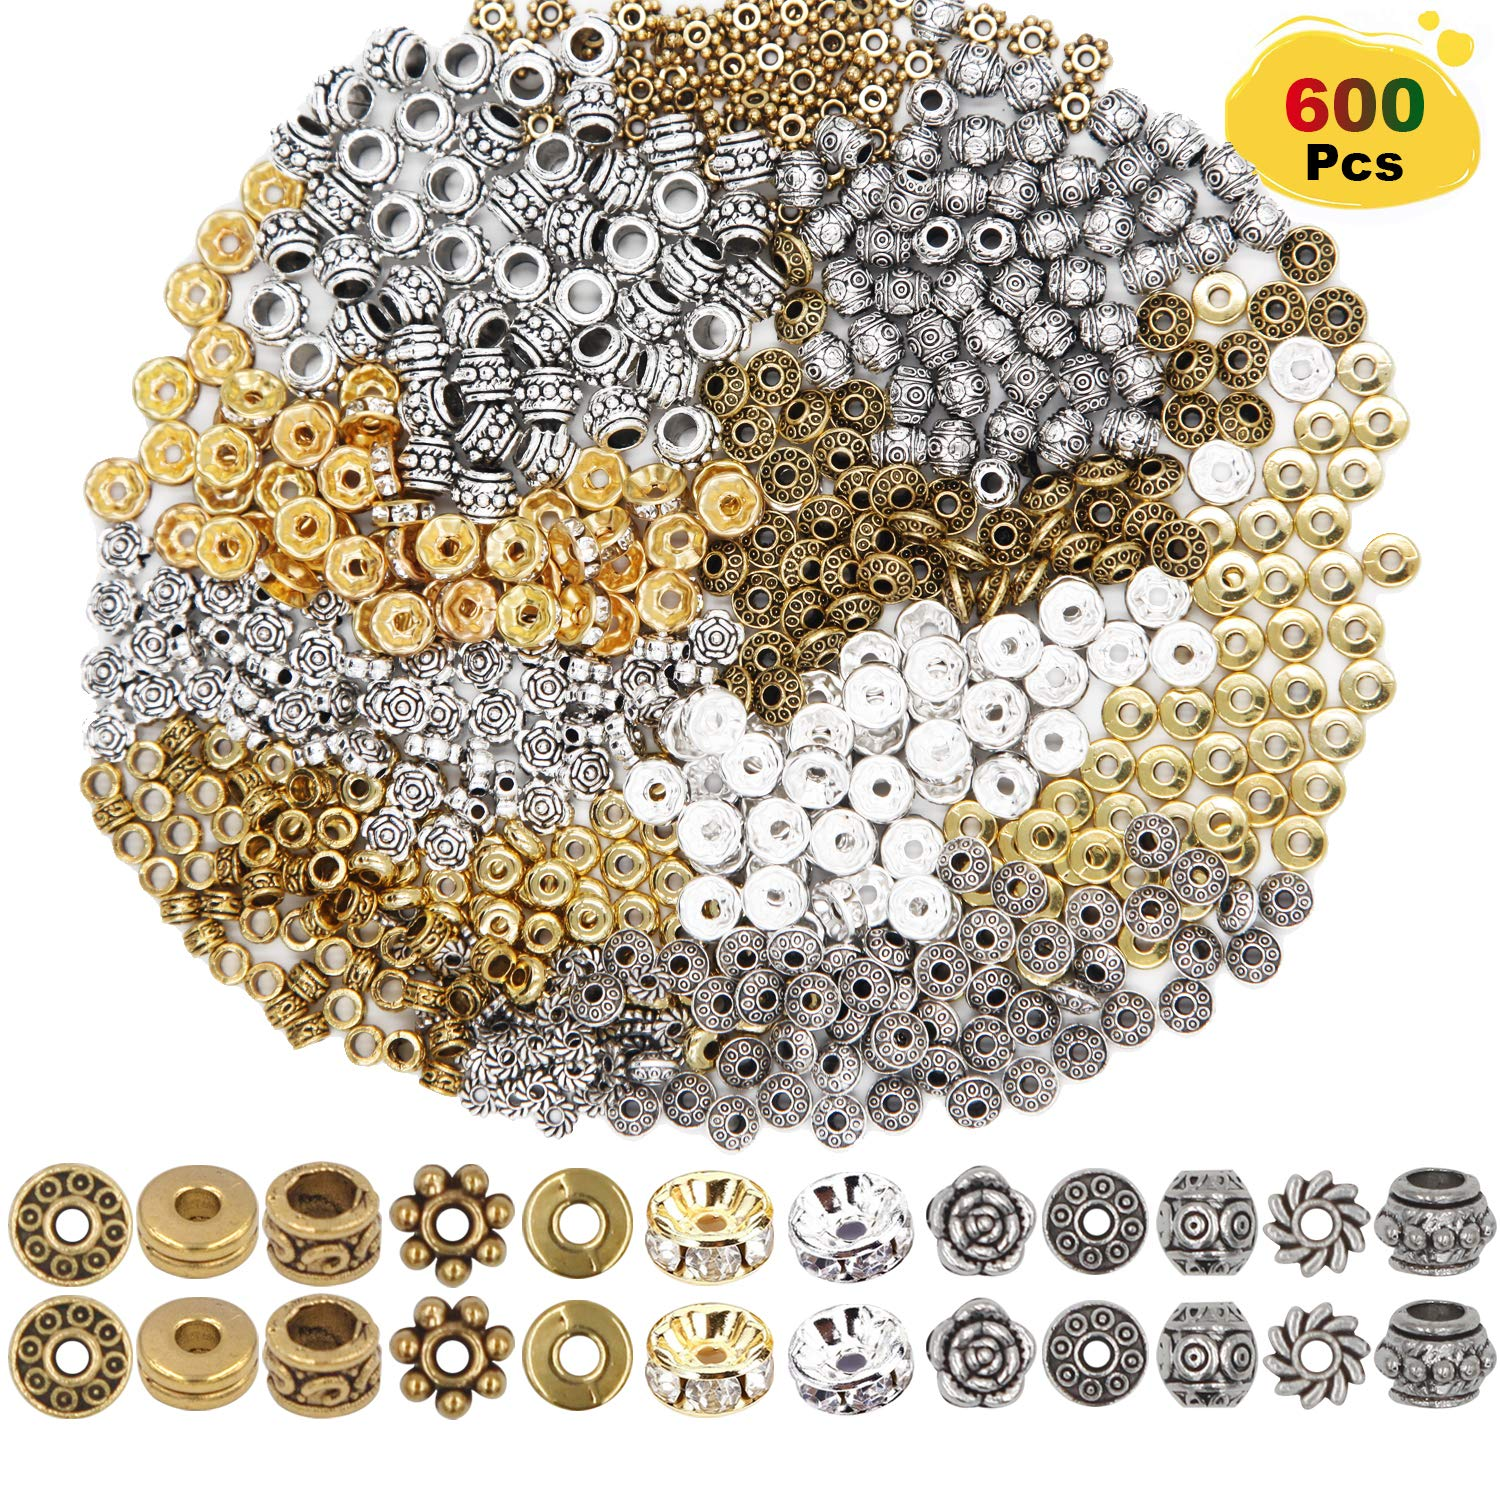 EuTengHao 600pcs Spacer Beads Jewelry Bead Charm Spacers Alloy Spacer Beads for Jewelry Making DIY Bracelets Necklace and Crafting (12 Styles,Silver and Gold) by EuTengHao